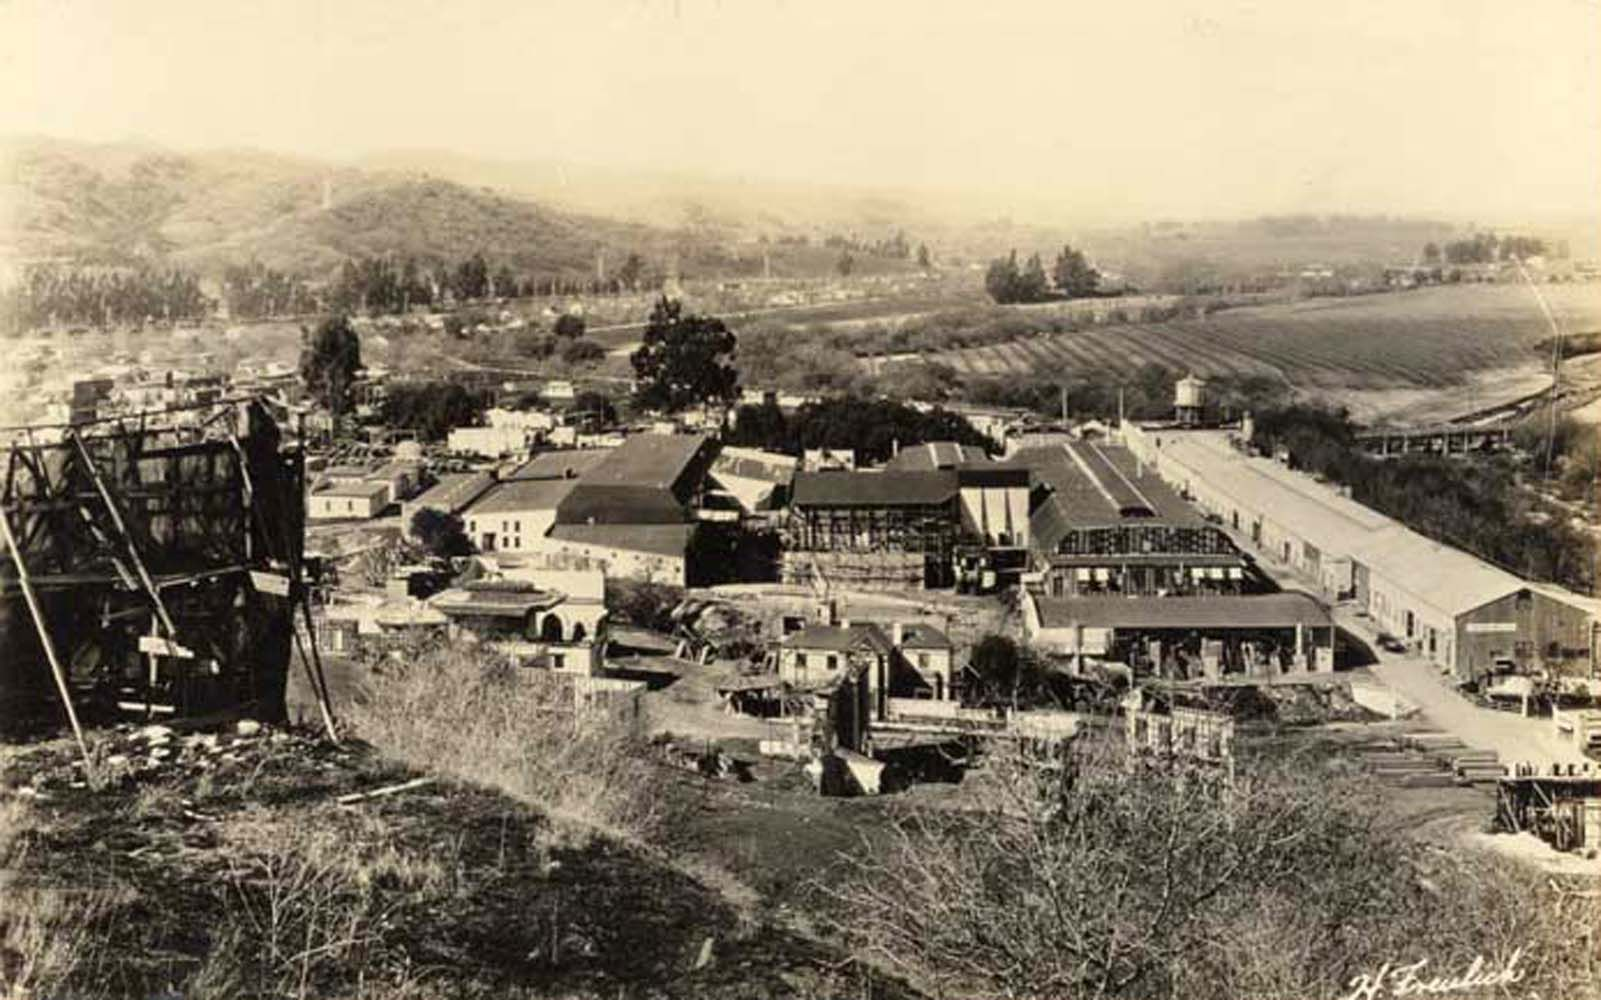 Universal City's backlot between 1915-1920. (Calfornia State Library) Bizarre Los Angeles